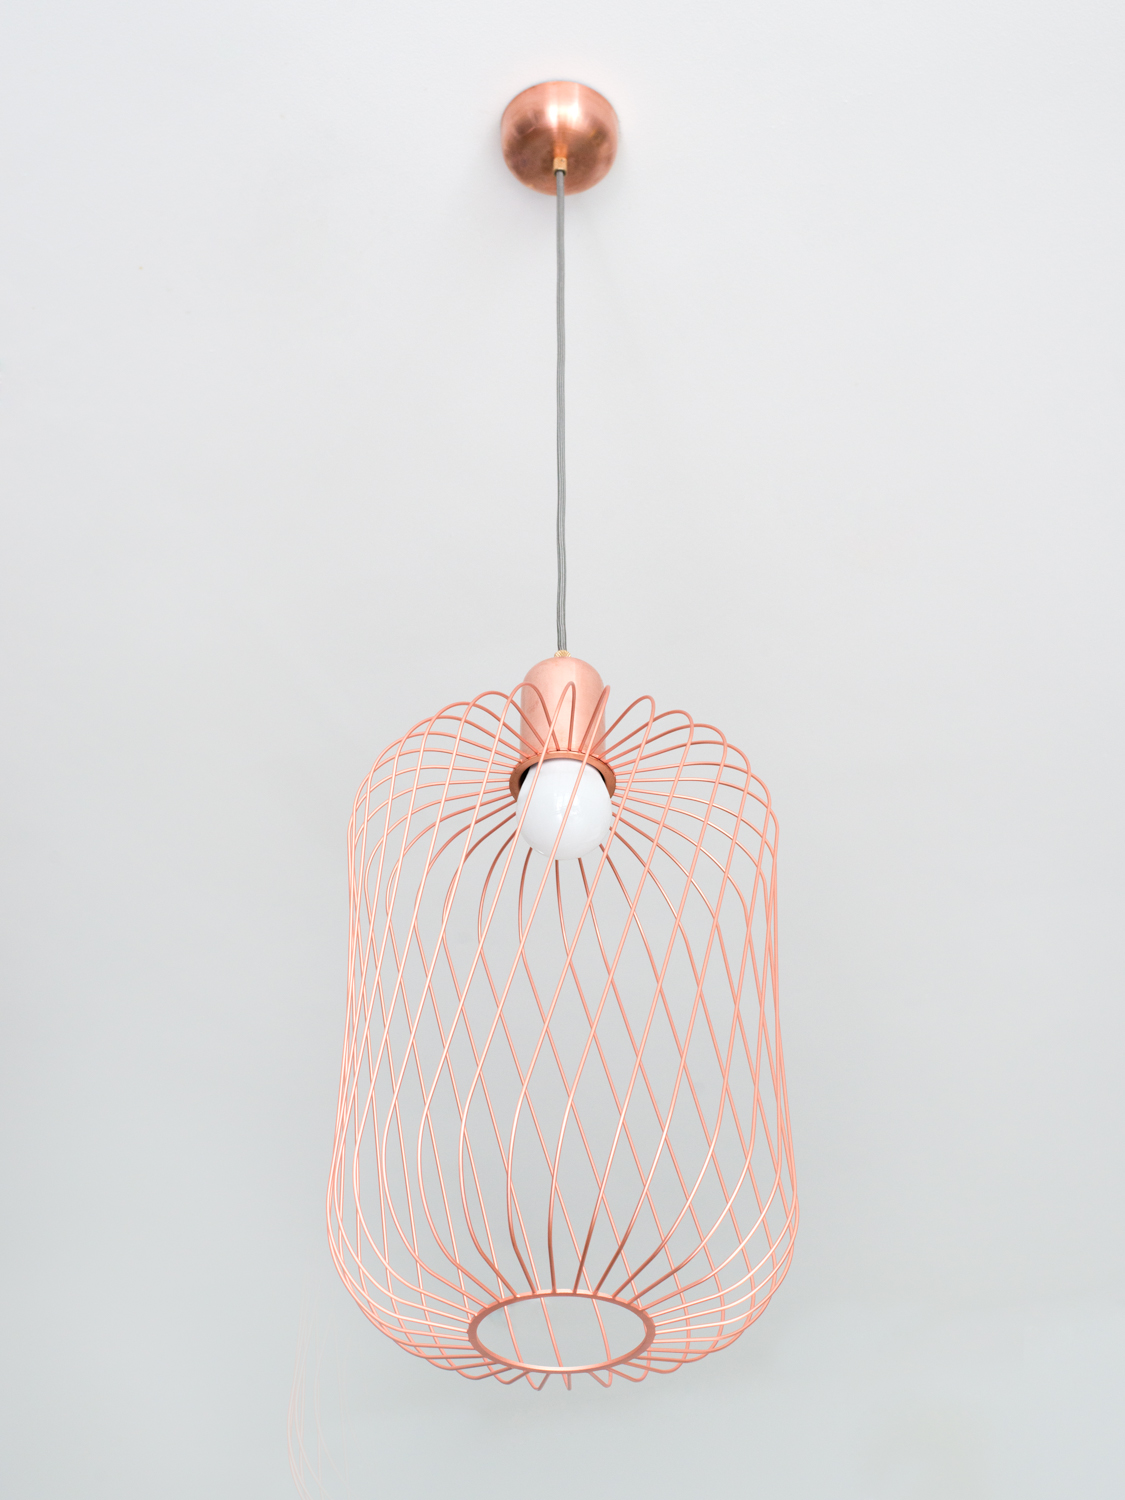 jon_lane_smith_lamp_03.jpg